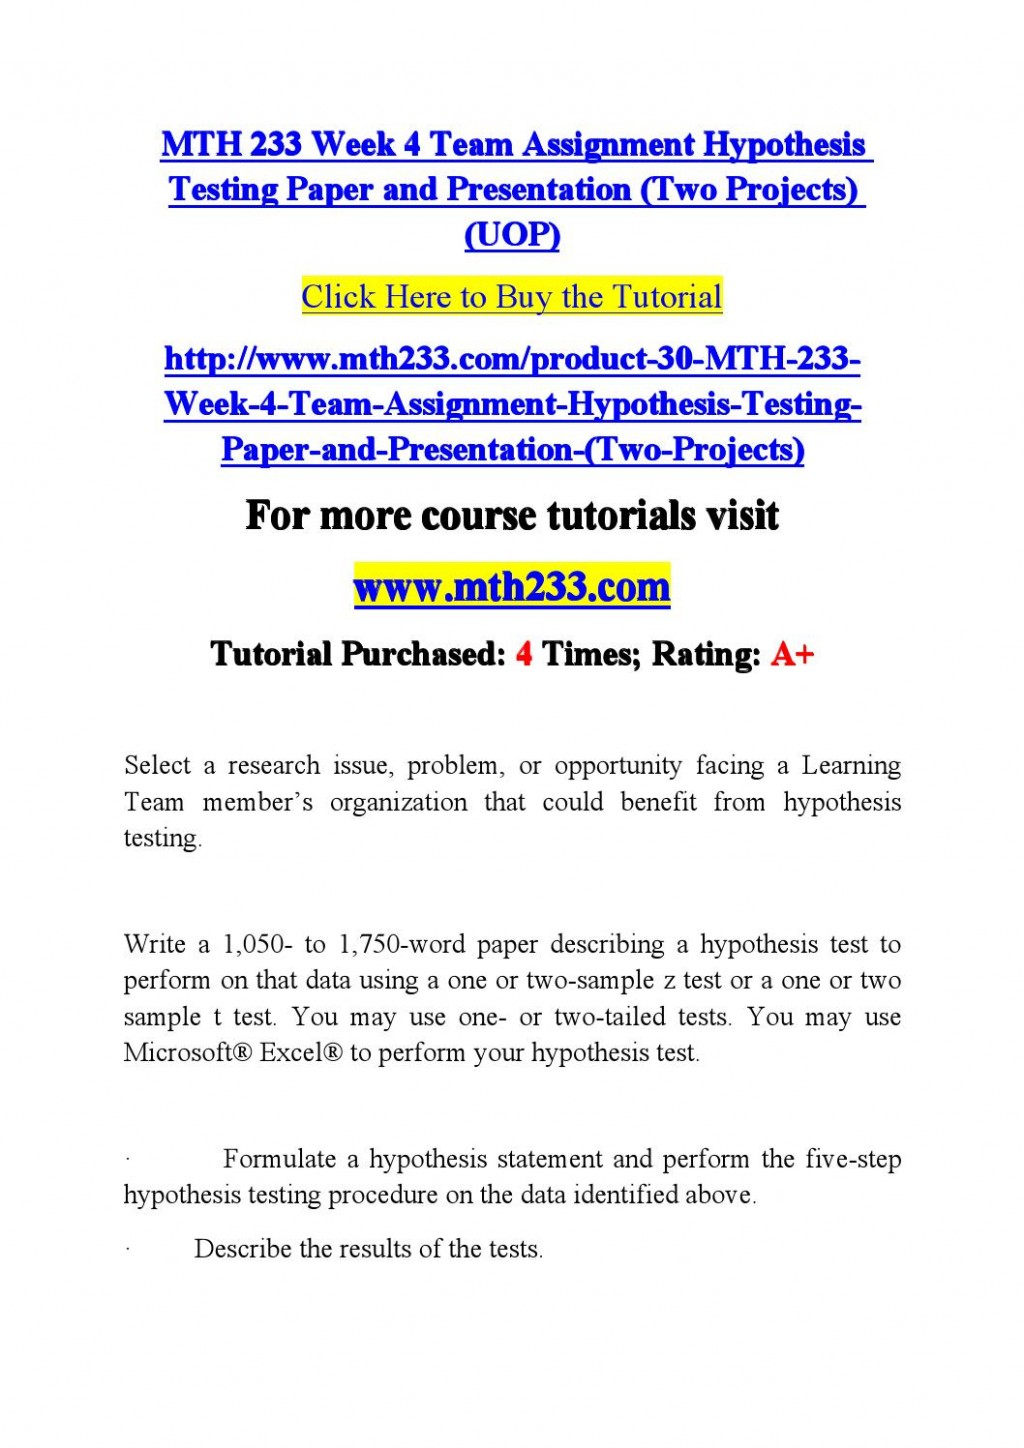 006 Research Paper Hypothesis Testing In Page 1 Awesome Pdf Large